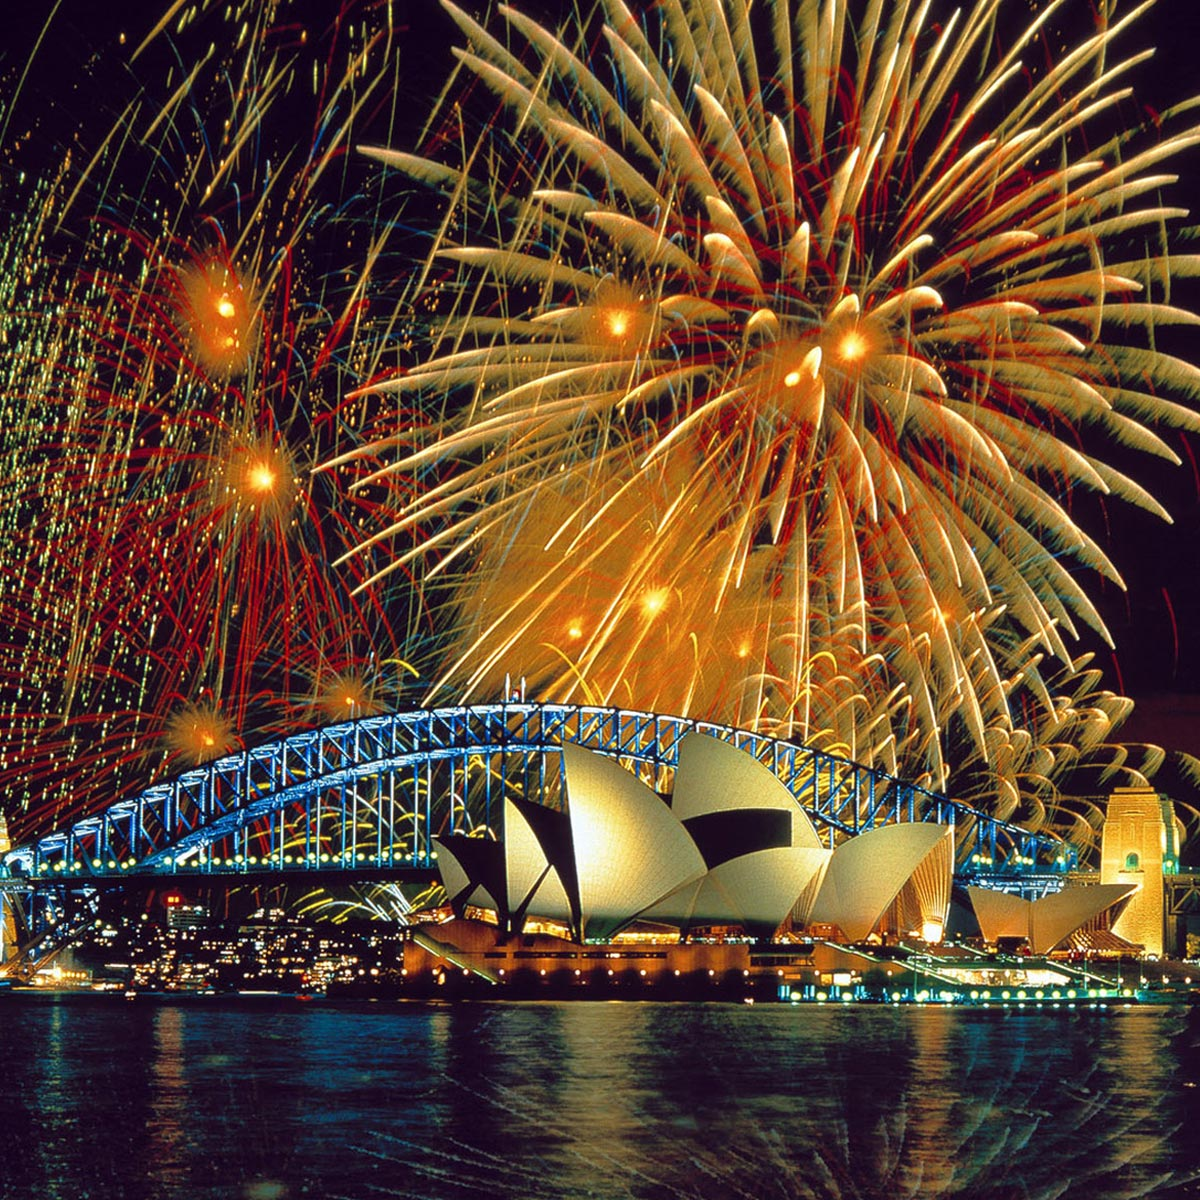 New Years Eve Yacht Party - Sydney Harbor | Aly Michaels